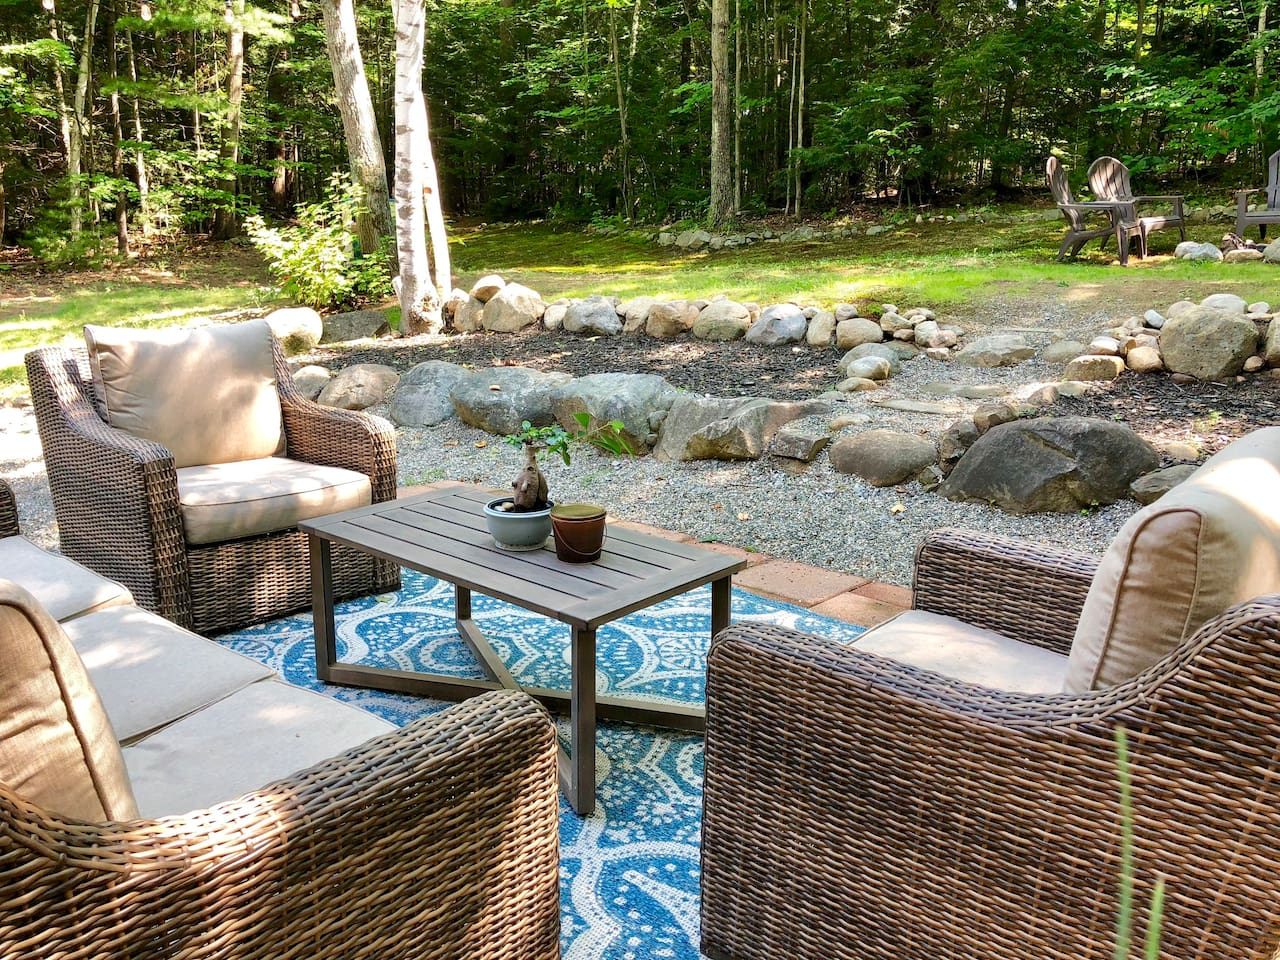 Backyard oasis complete with comfortable seating, bonfire pit, grill, patio dining and hammock.  Outdoor will be removed for the season in November, weather permitting.